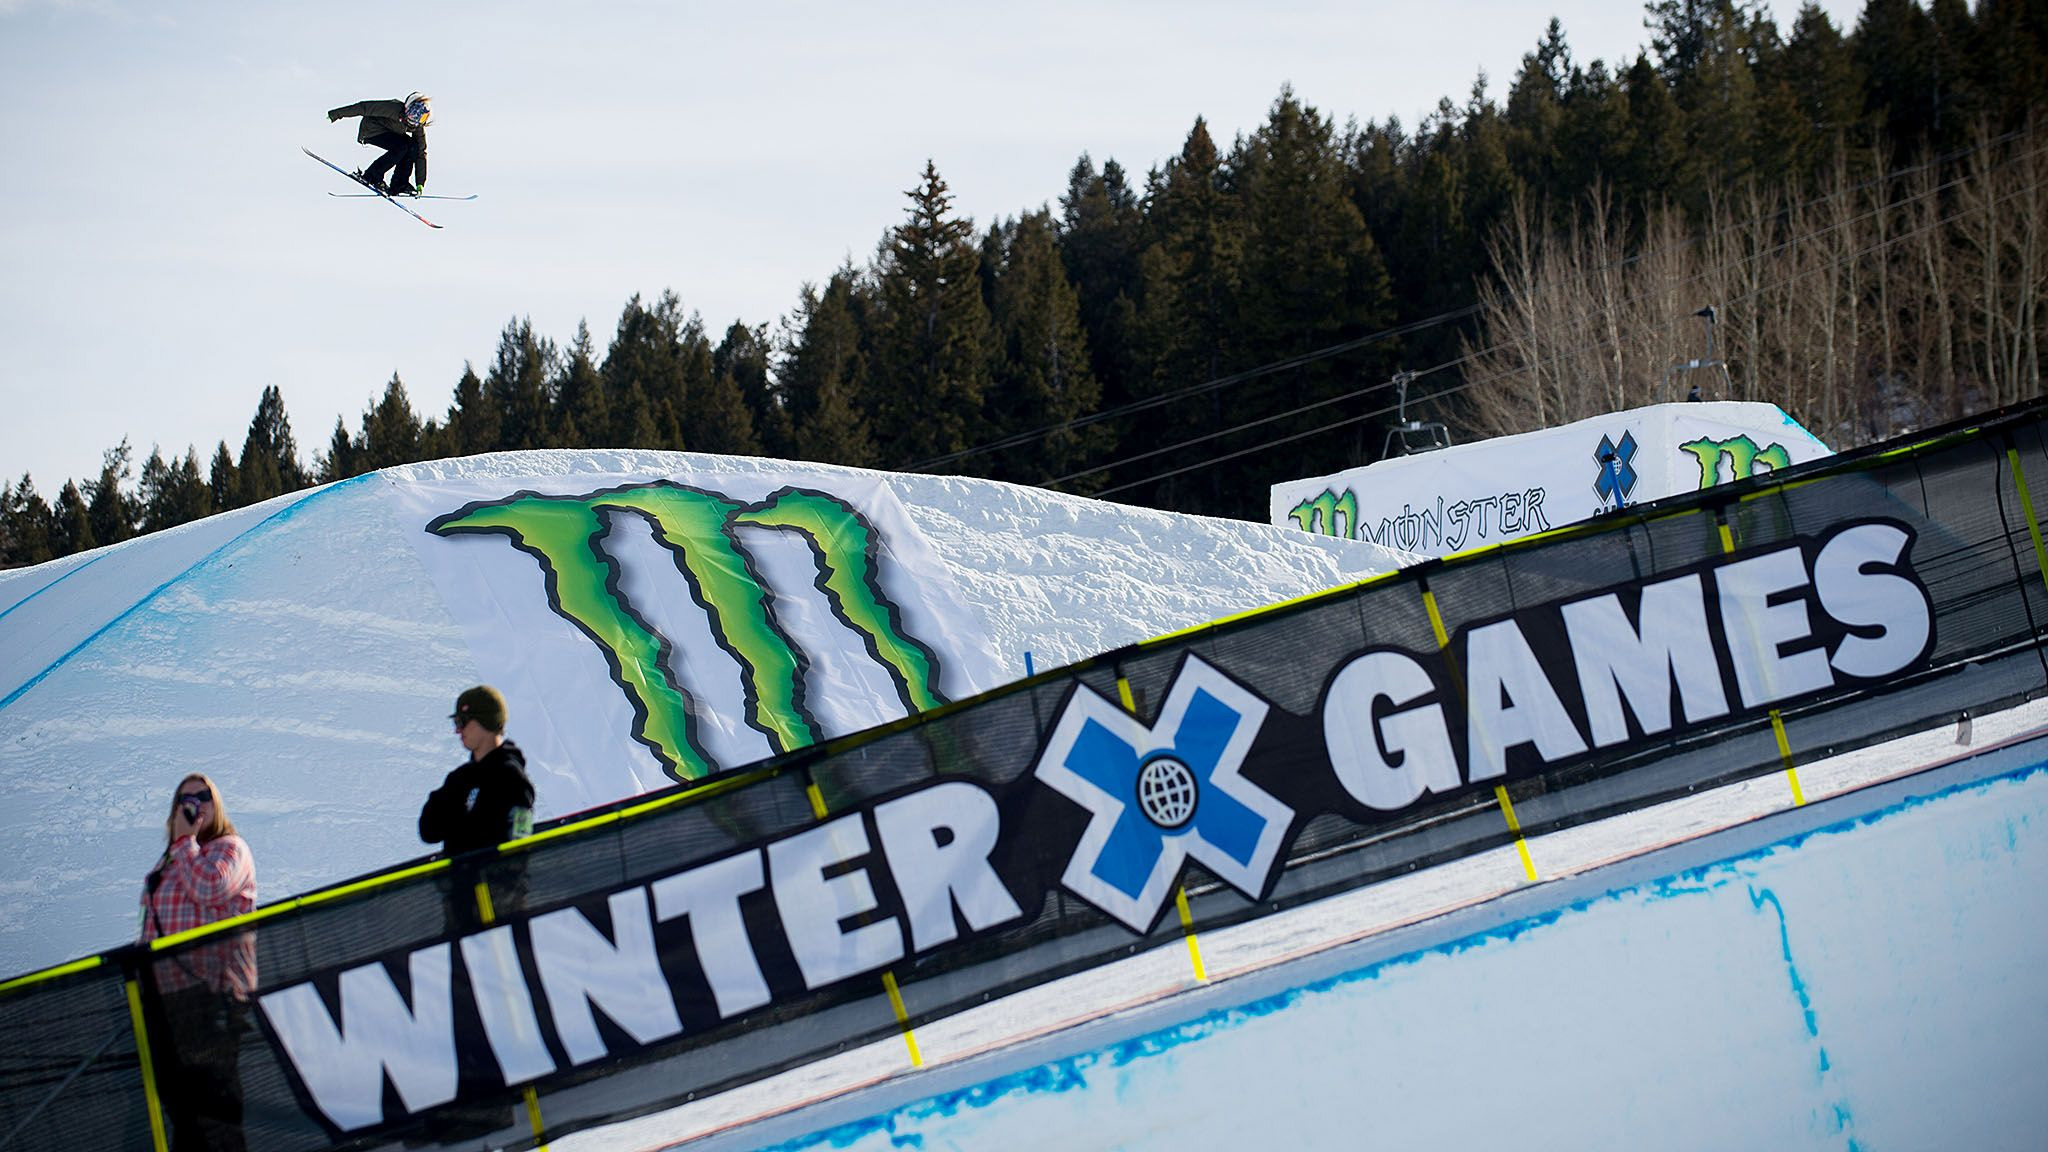 Fresh off his gold medal-winning performance in Men's Ski Slopestyle, Nick Goepper joins Adaptive SnoCross gold medalist Mike Schultz and X Games host Brandon Graham on X Games Extra Sunday night.